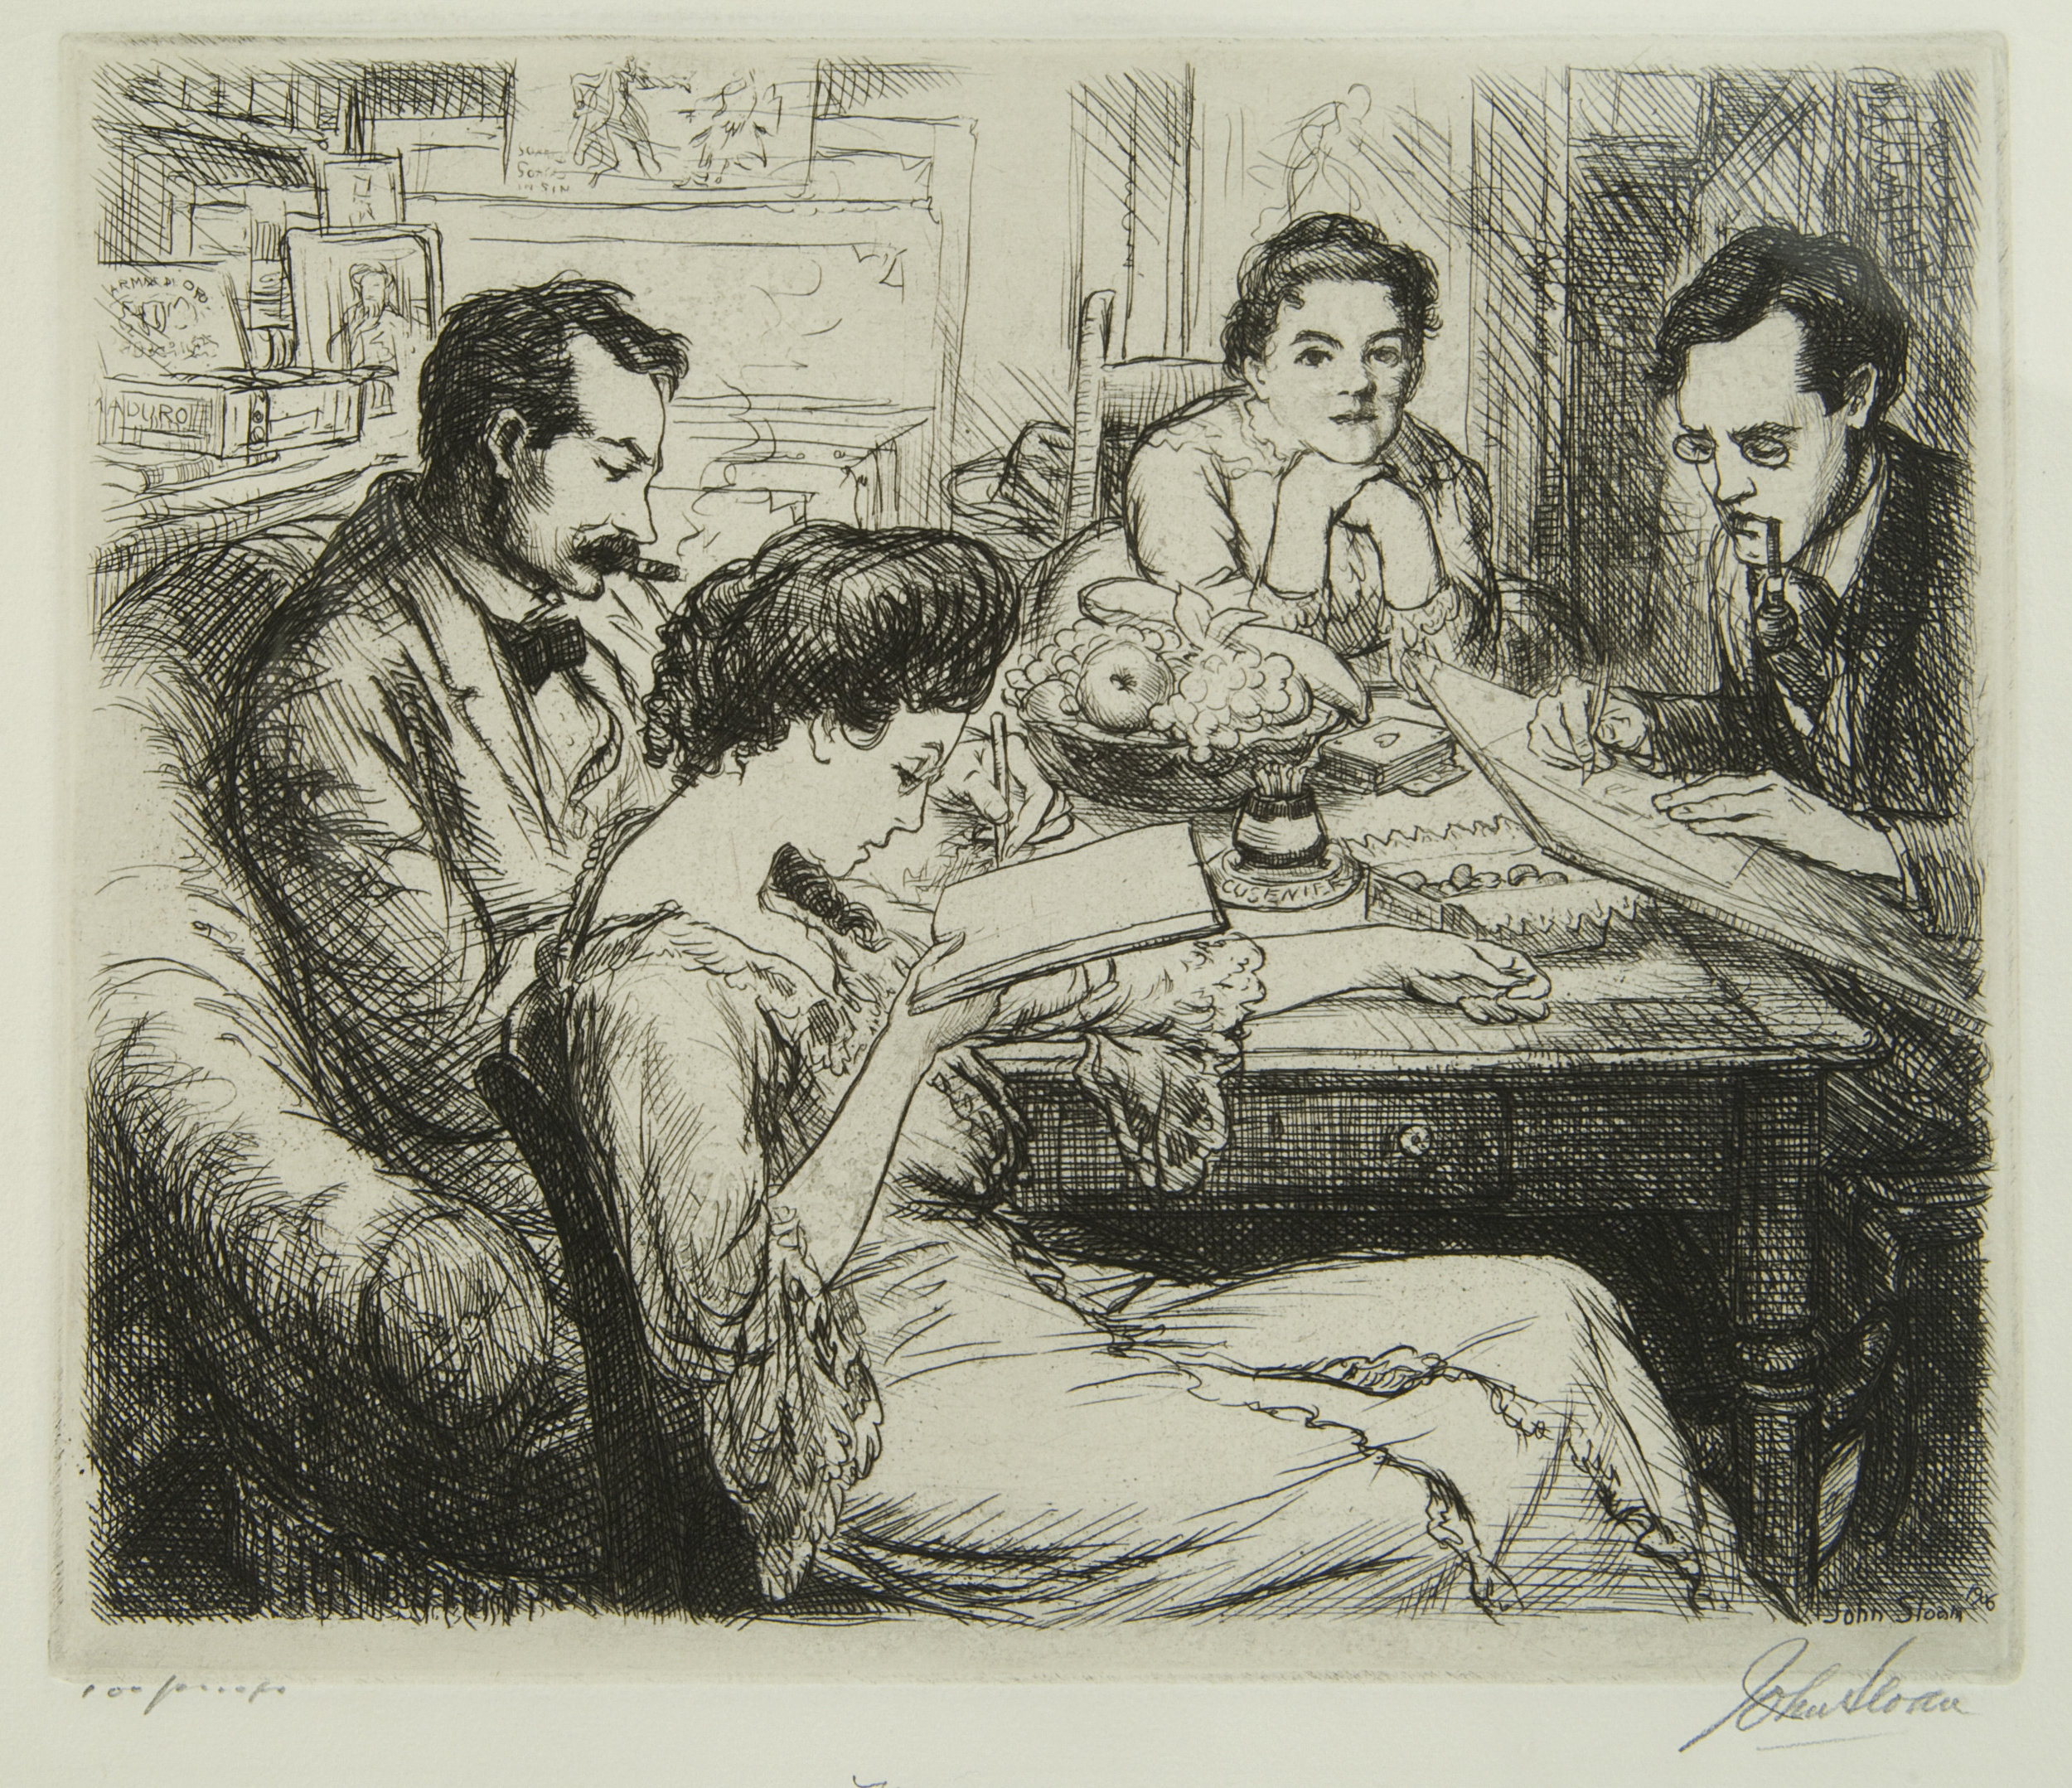 Etching of four figures sitting at a table, two men and two women. One reads while smoking, a woman reads, a man draws, and a woman looks at the viewer